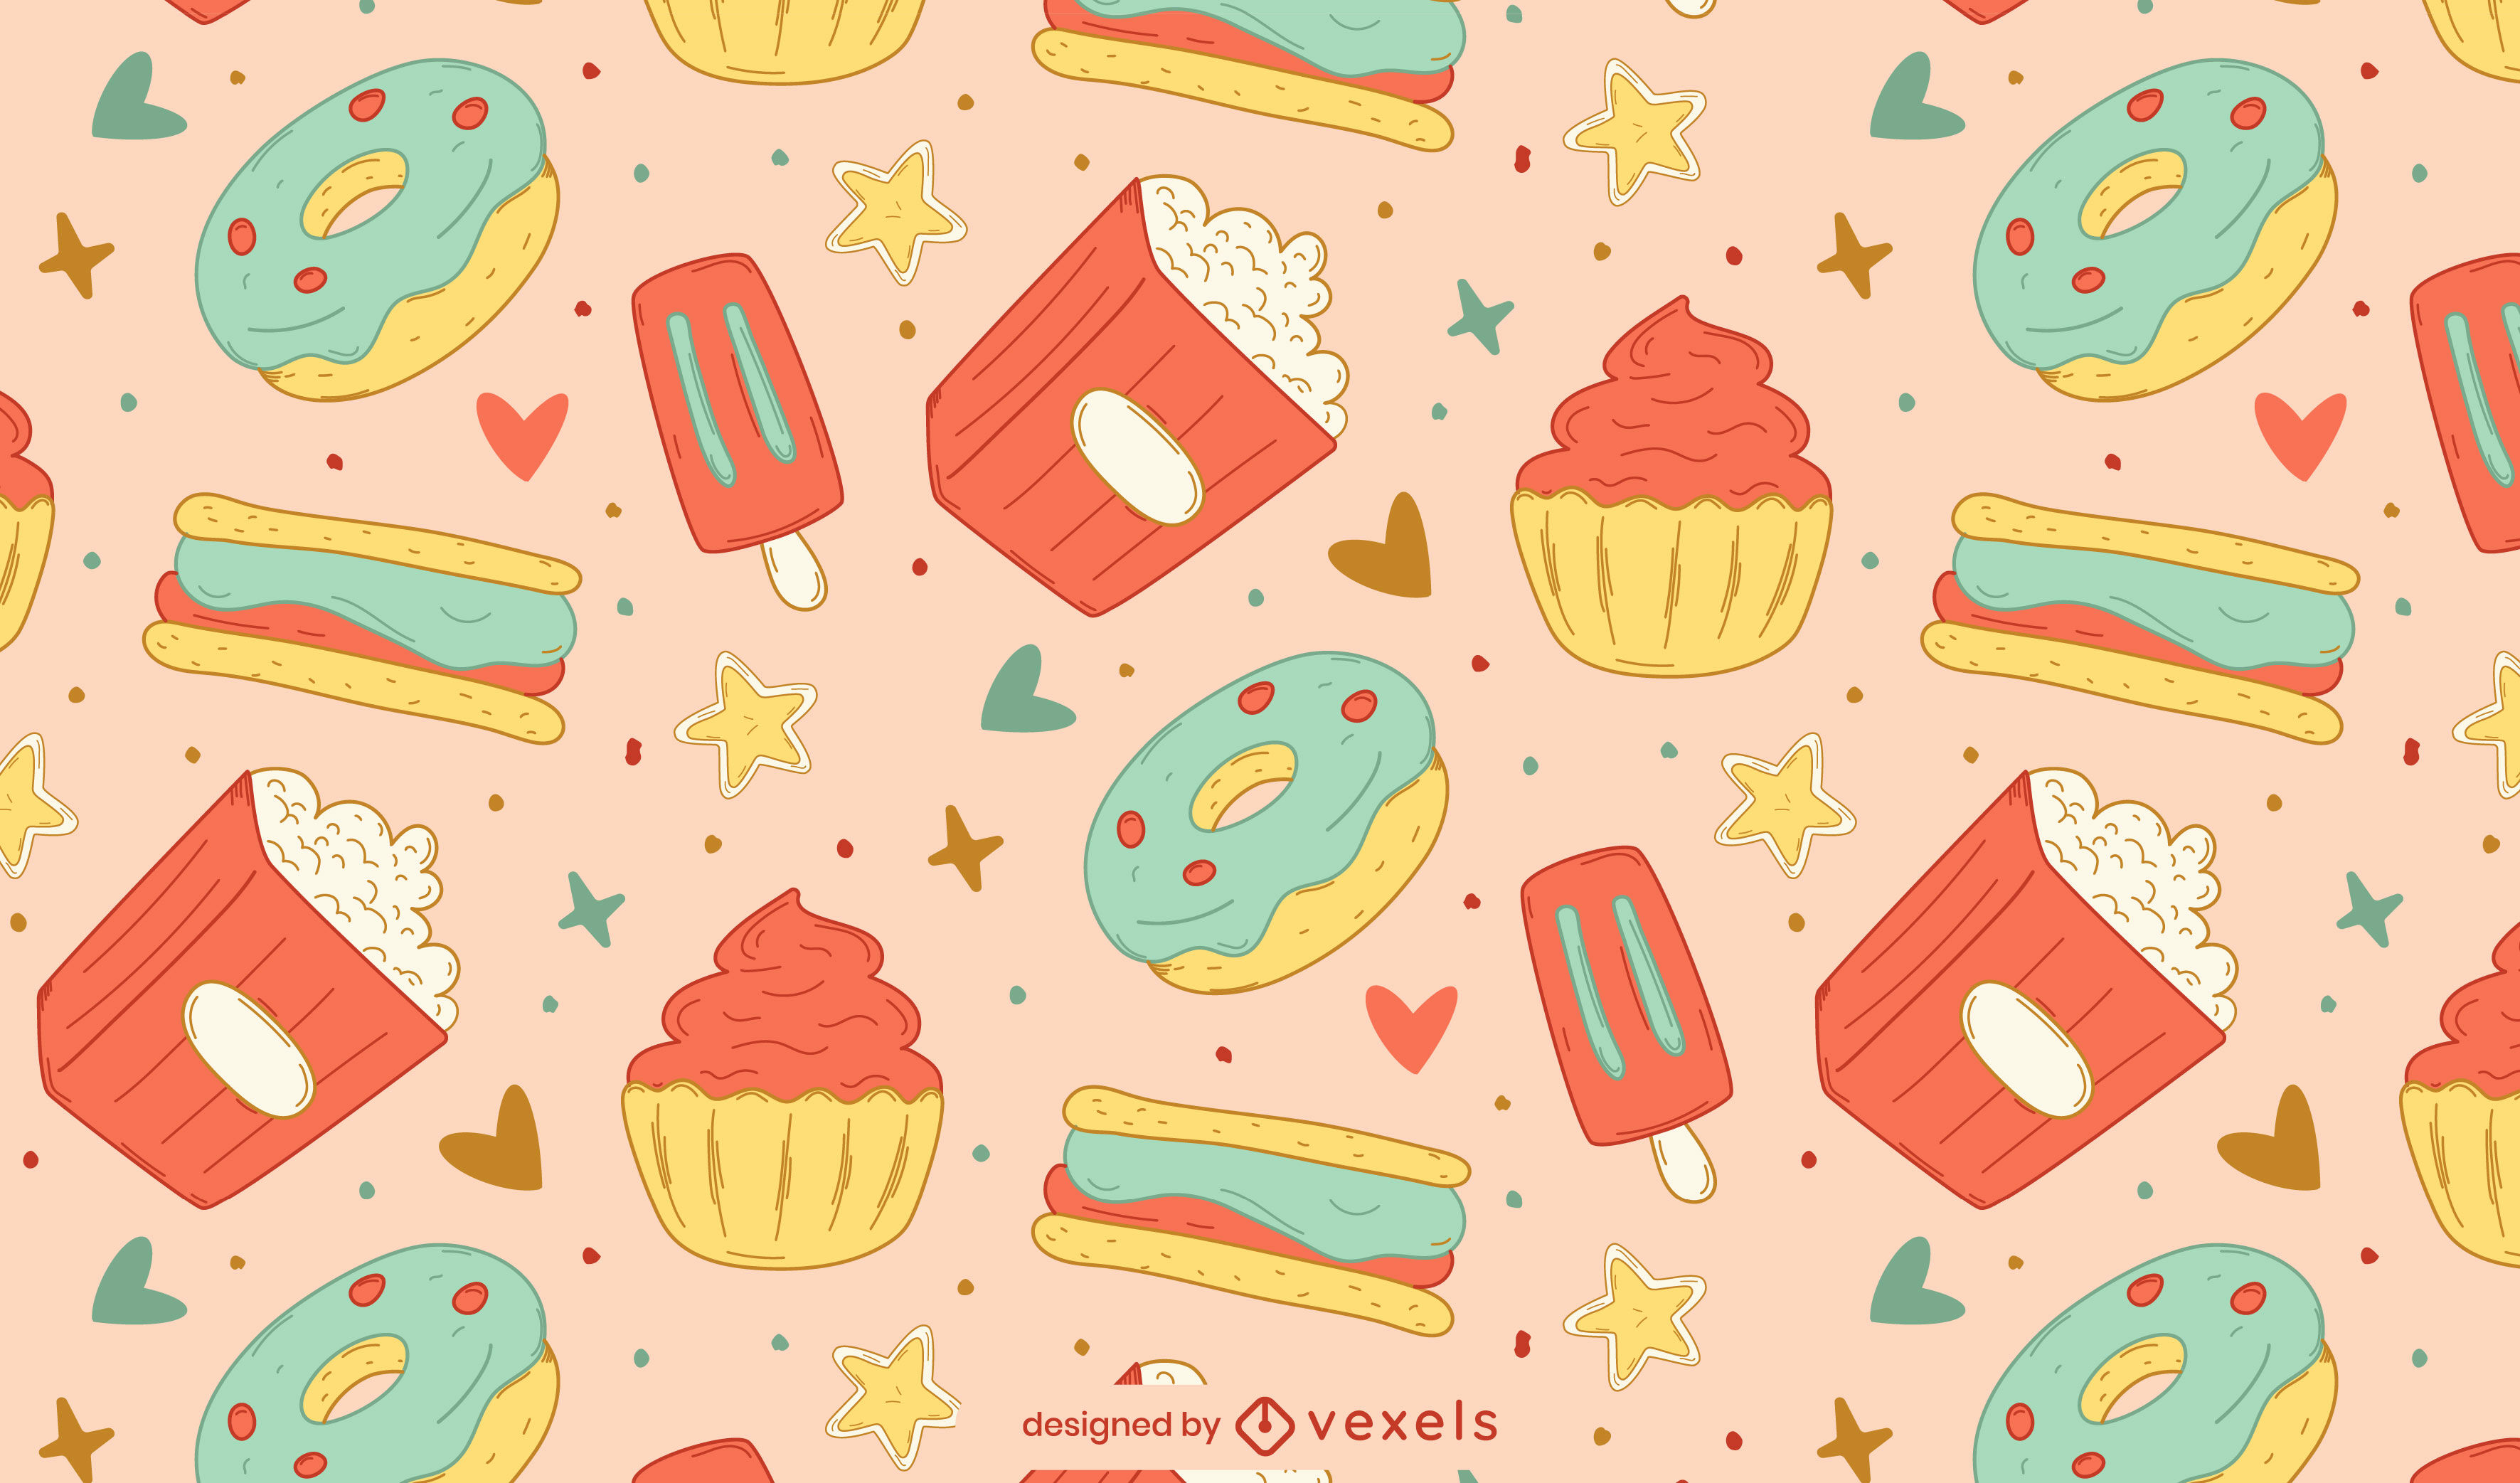 Sweet food and snacks pattern design